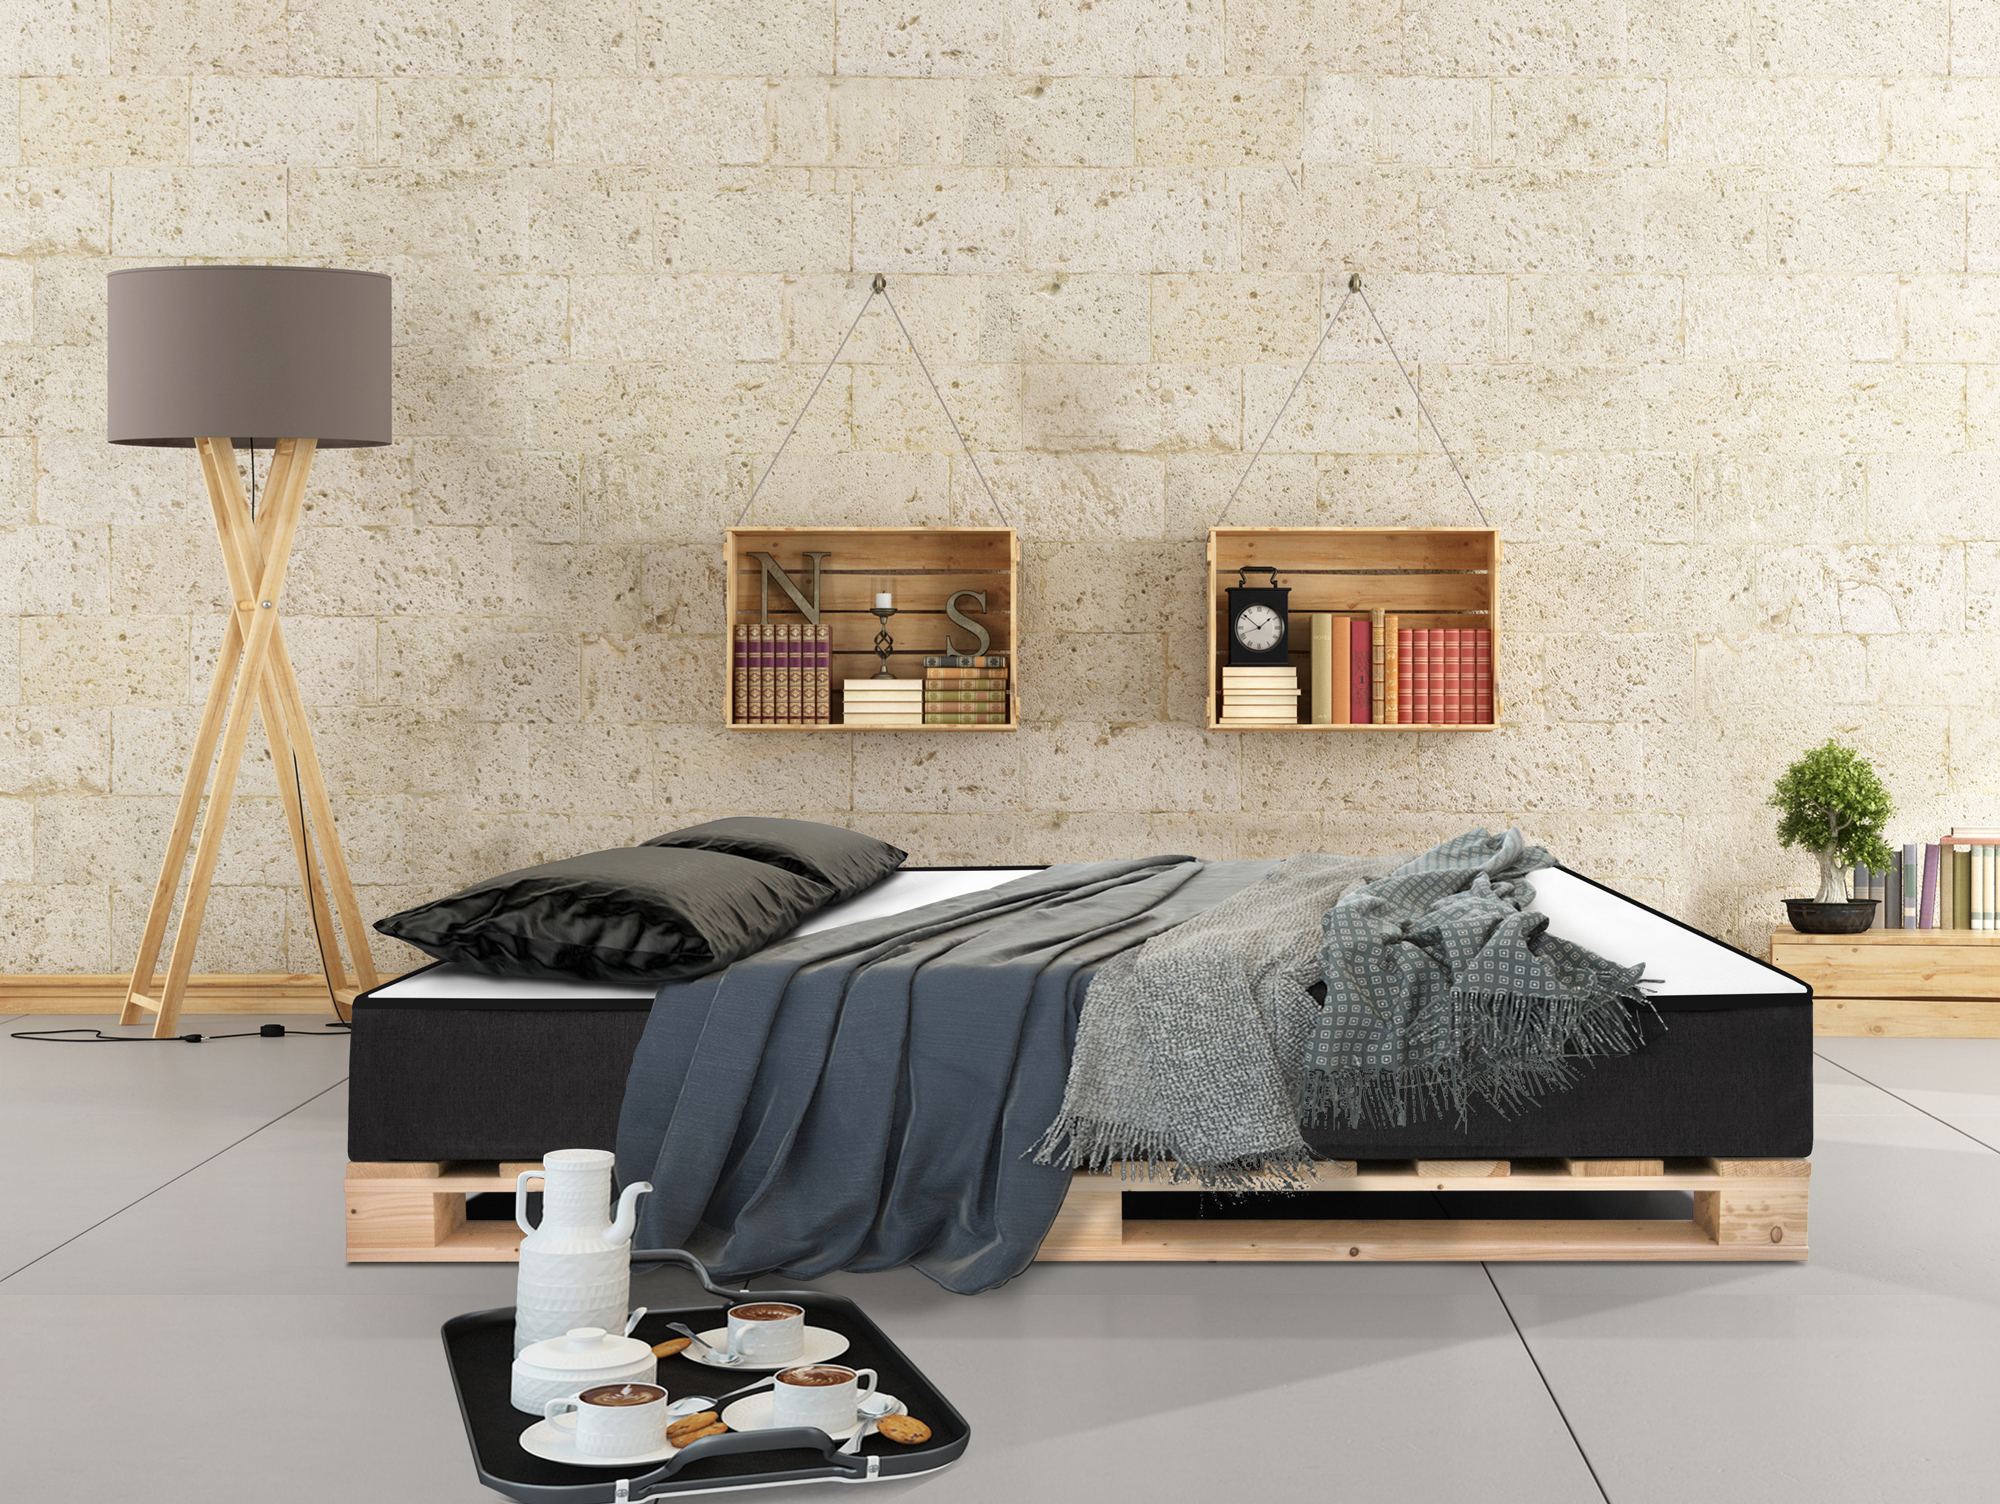 paletti massivholzbett palettenbett inkl moody matratze 90 x 200 cm fichte natur. Black Bedroom Furniture Sets. Home Design Ideas